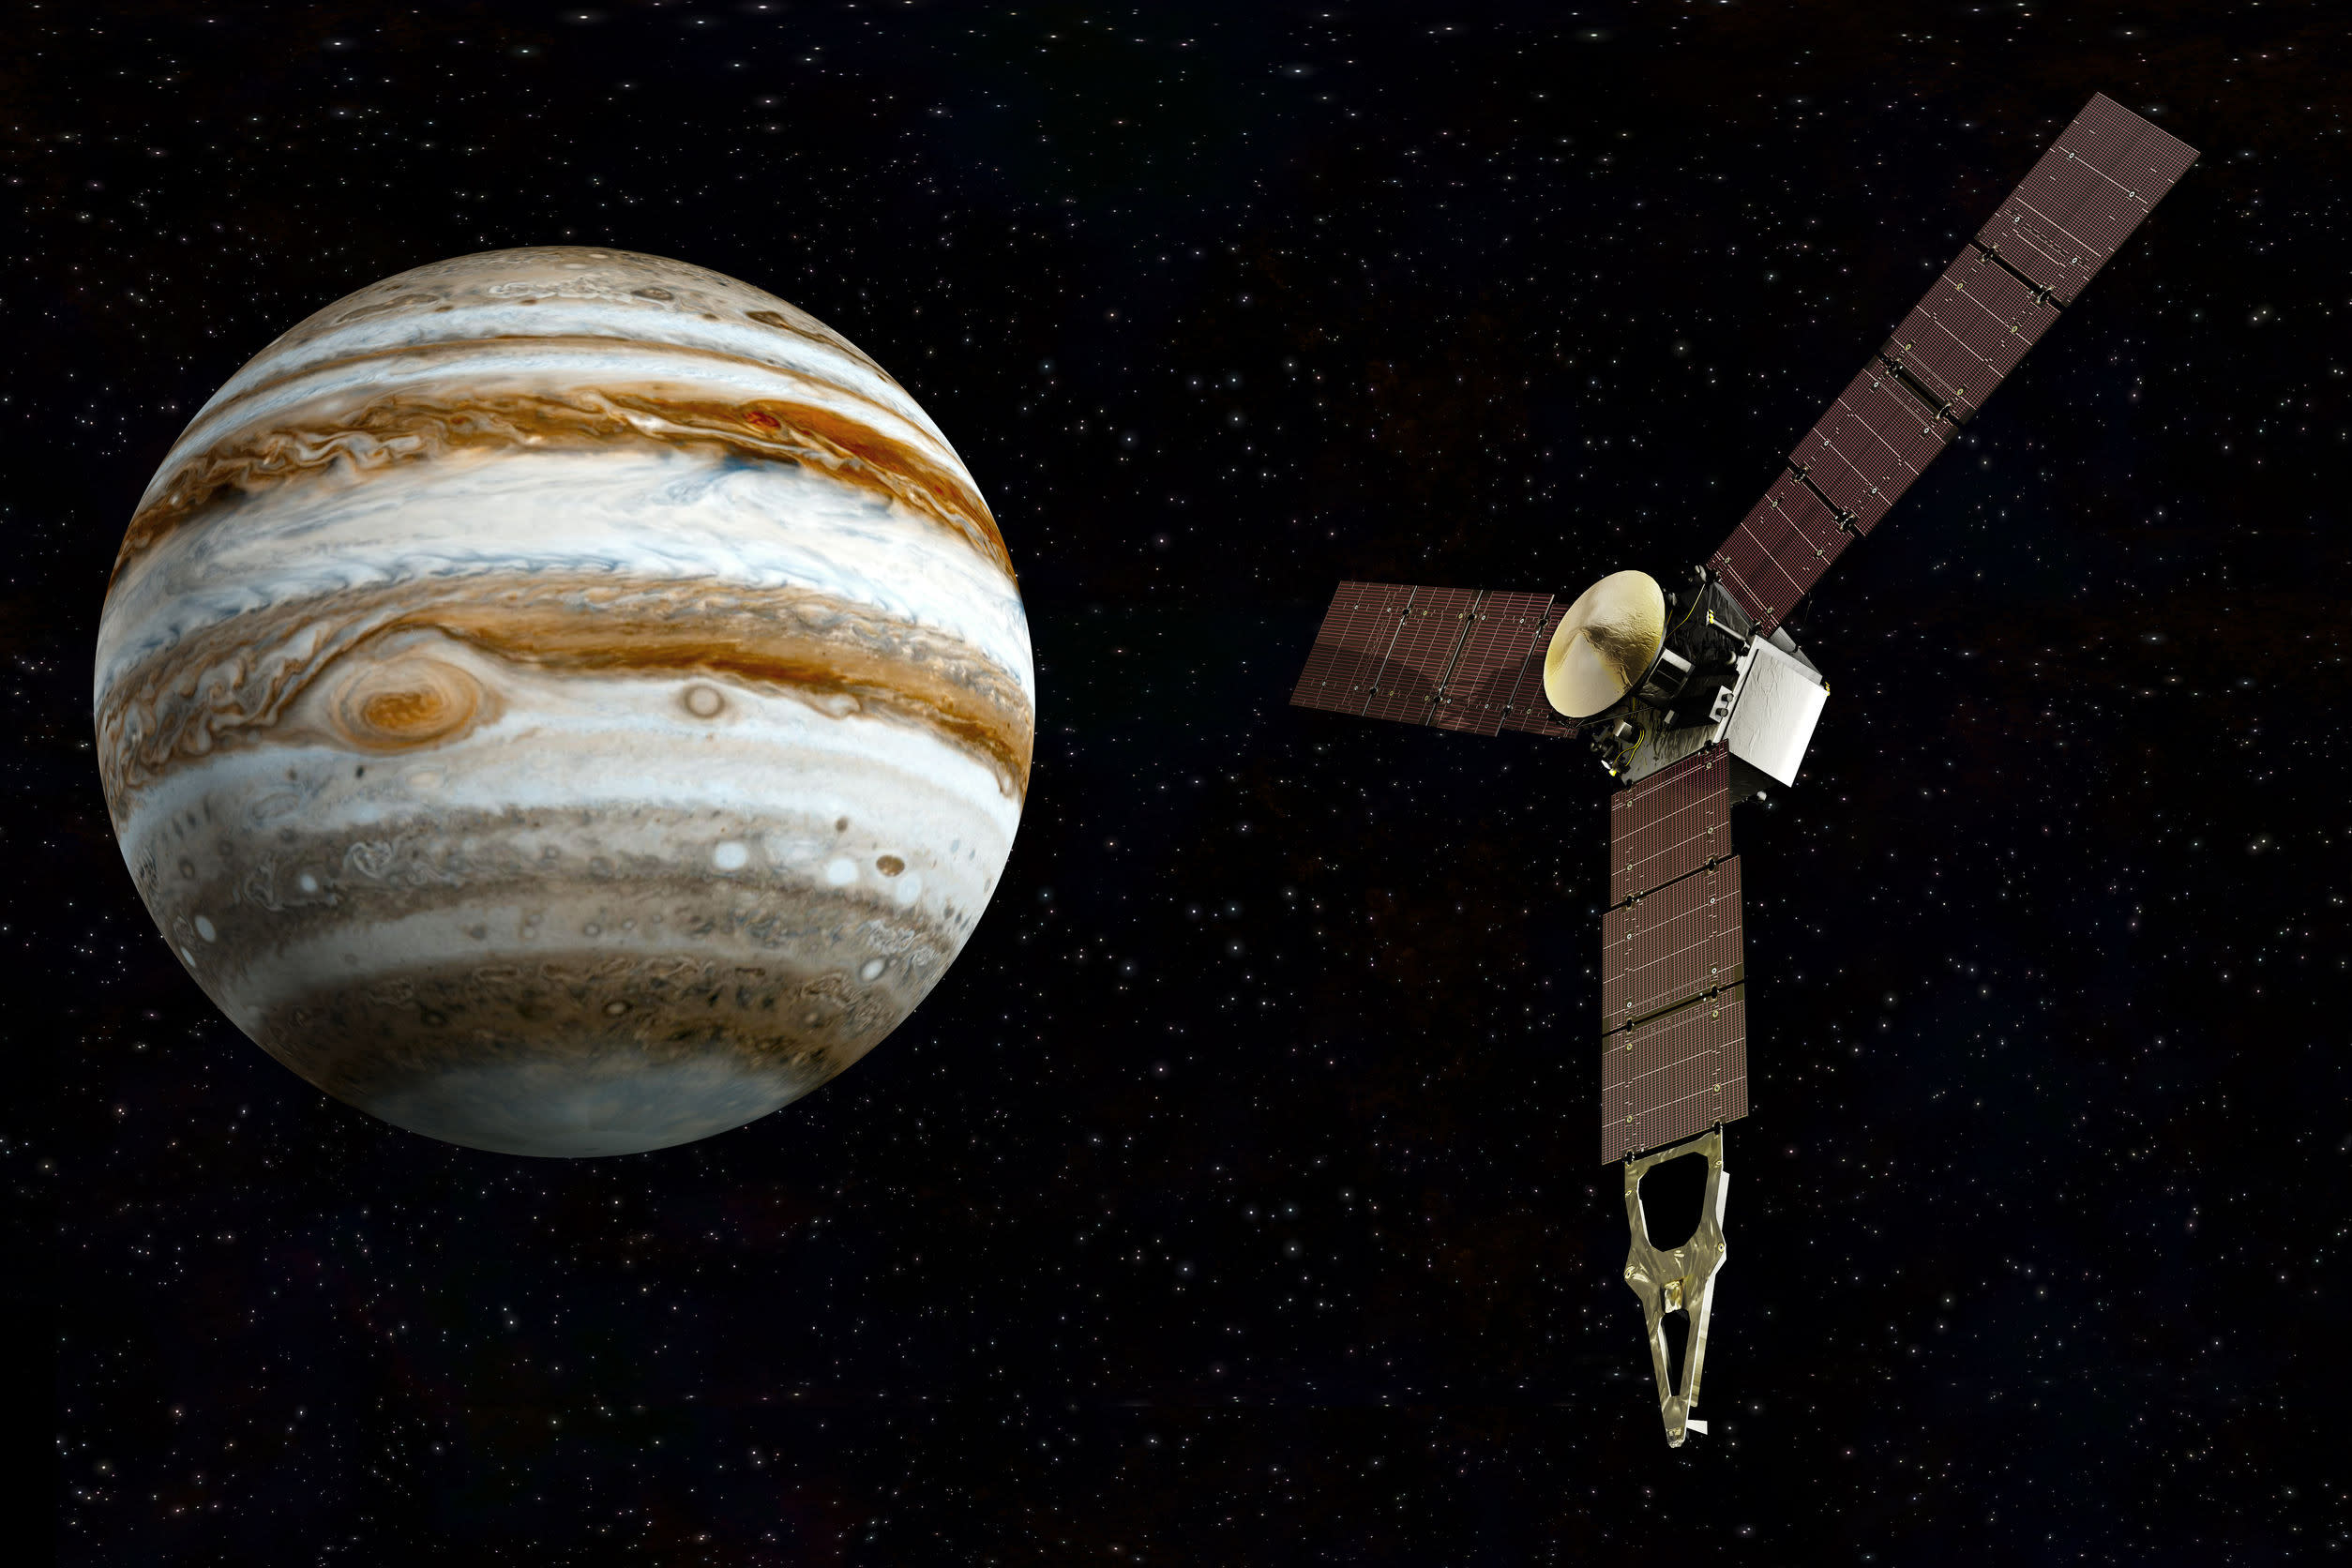 Before Juno's upcoming historic entry into Jupiter's orbit, watch how it all began